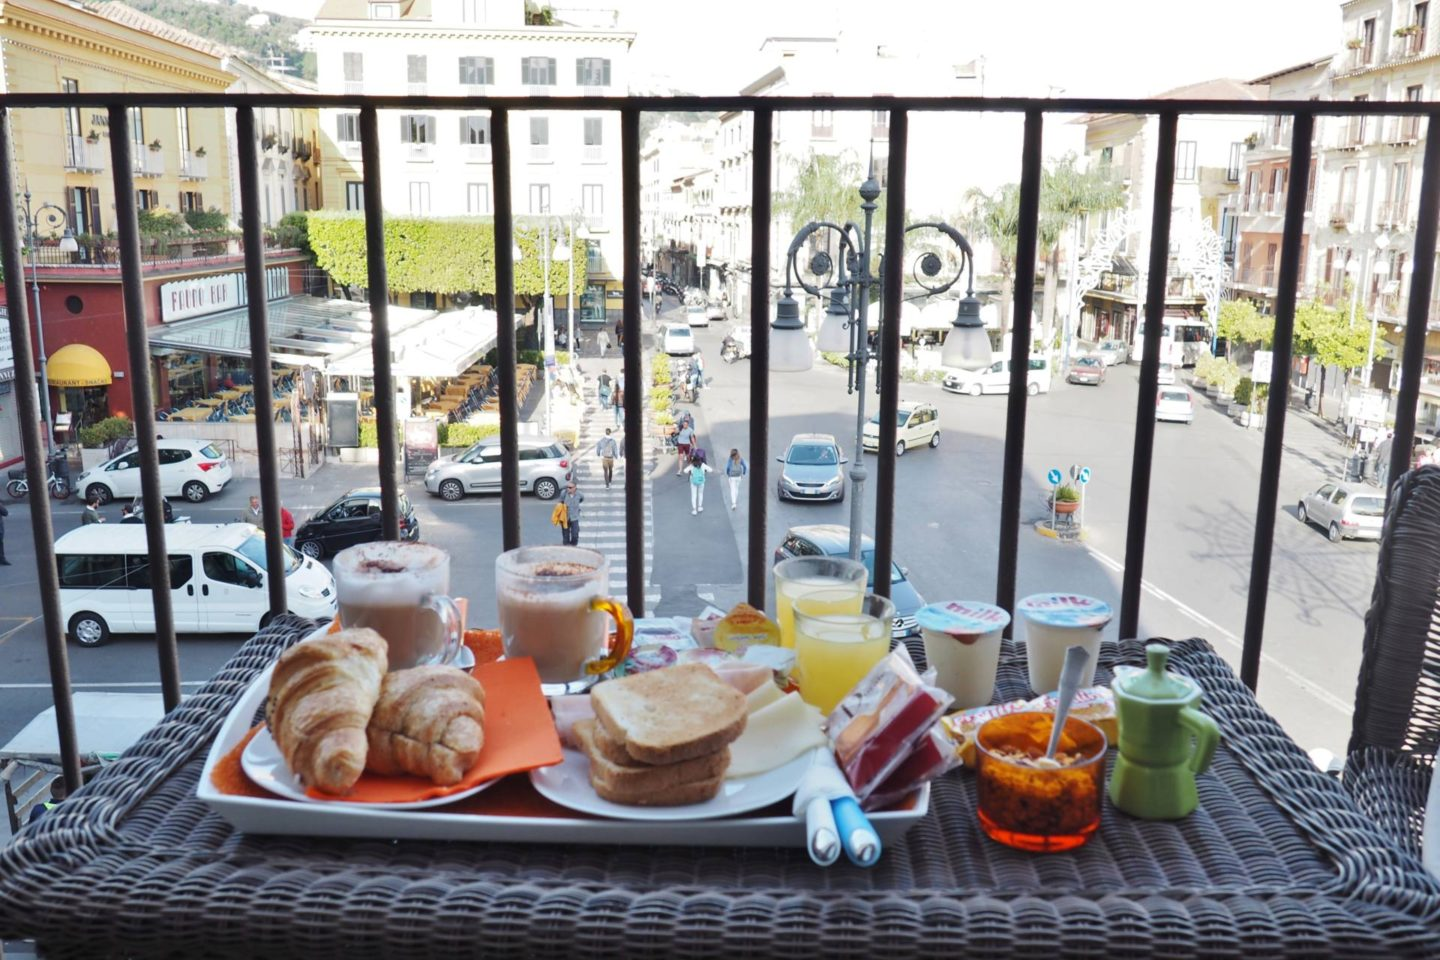 Emma Victoria Stokes Sorrento Main Square Piazza Tasso B&B Breakfast